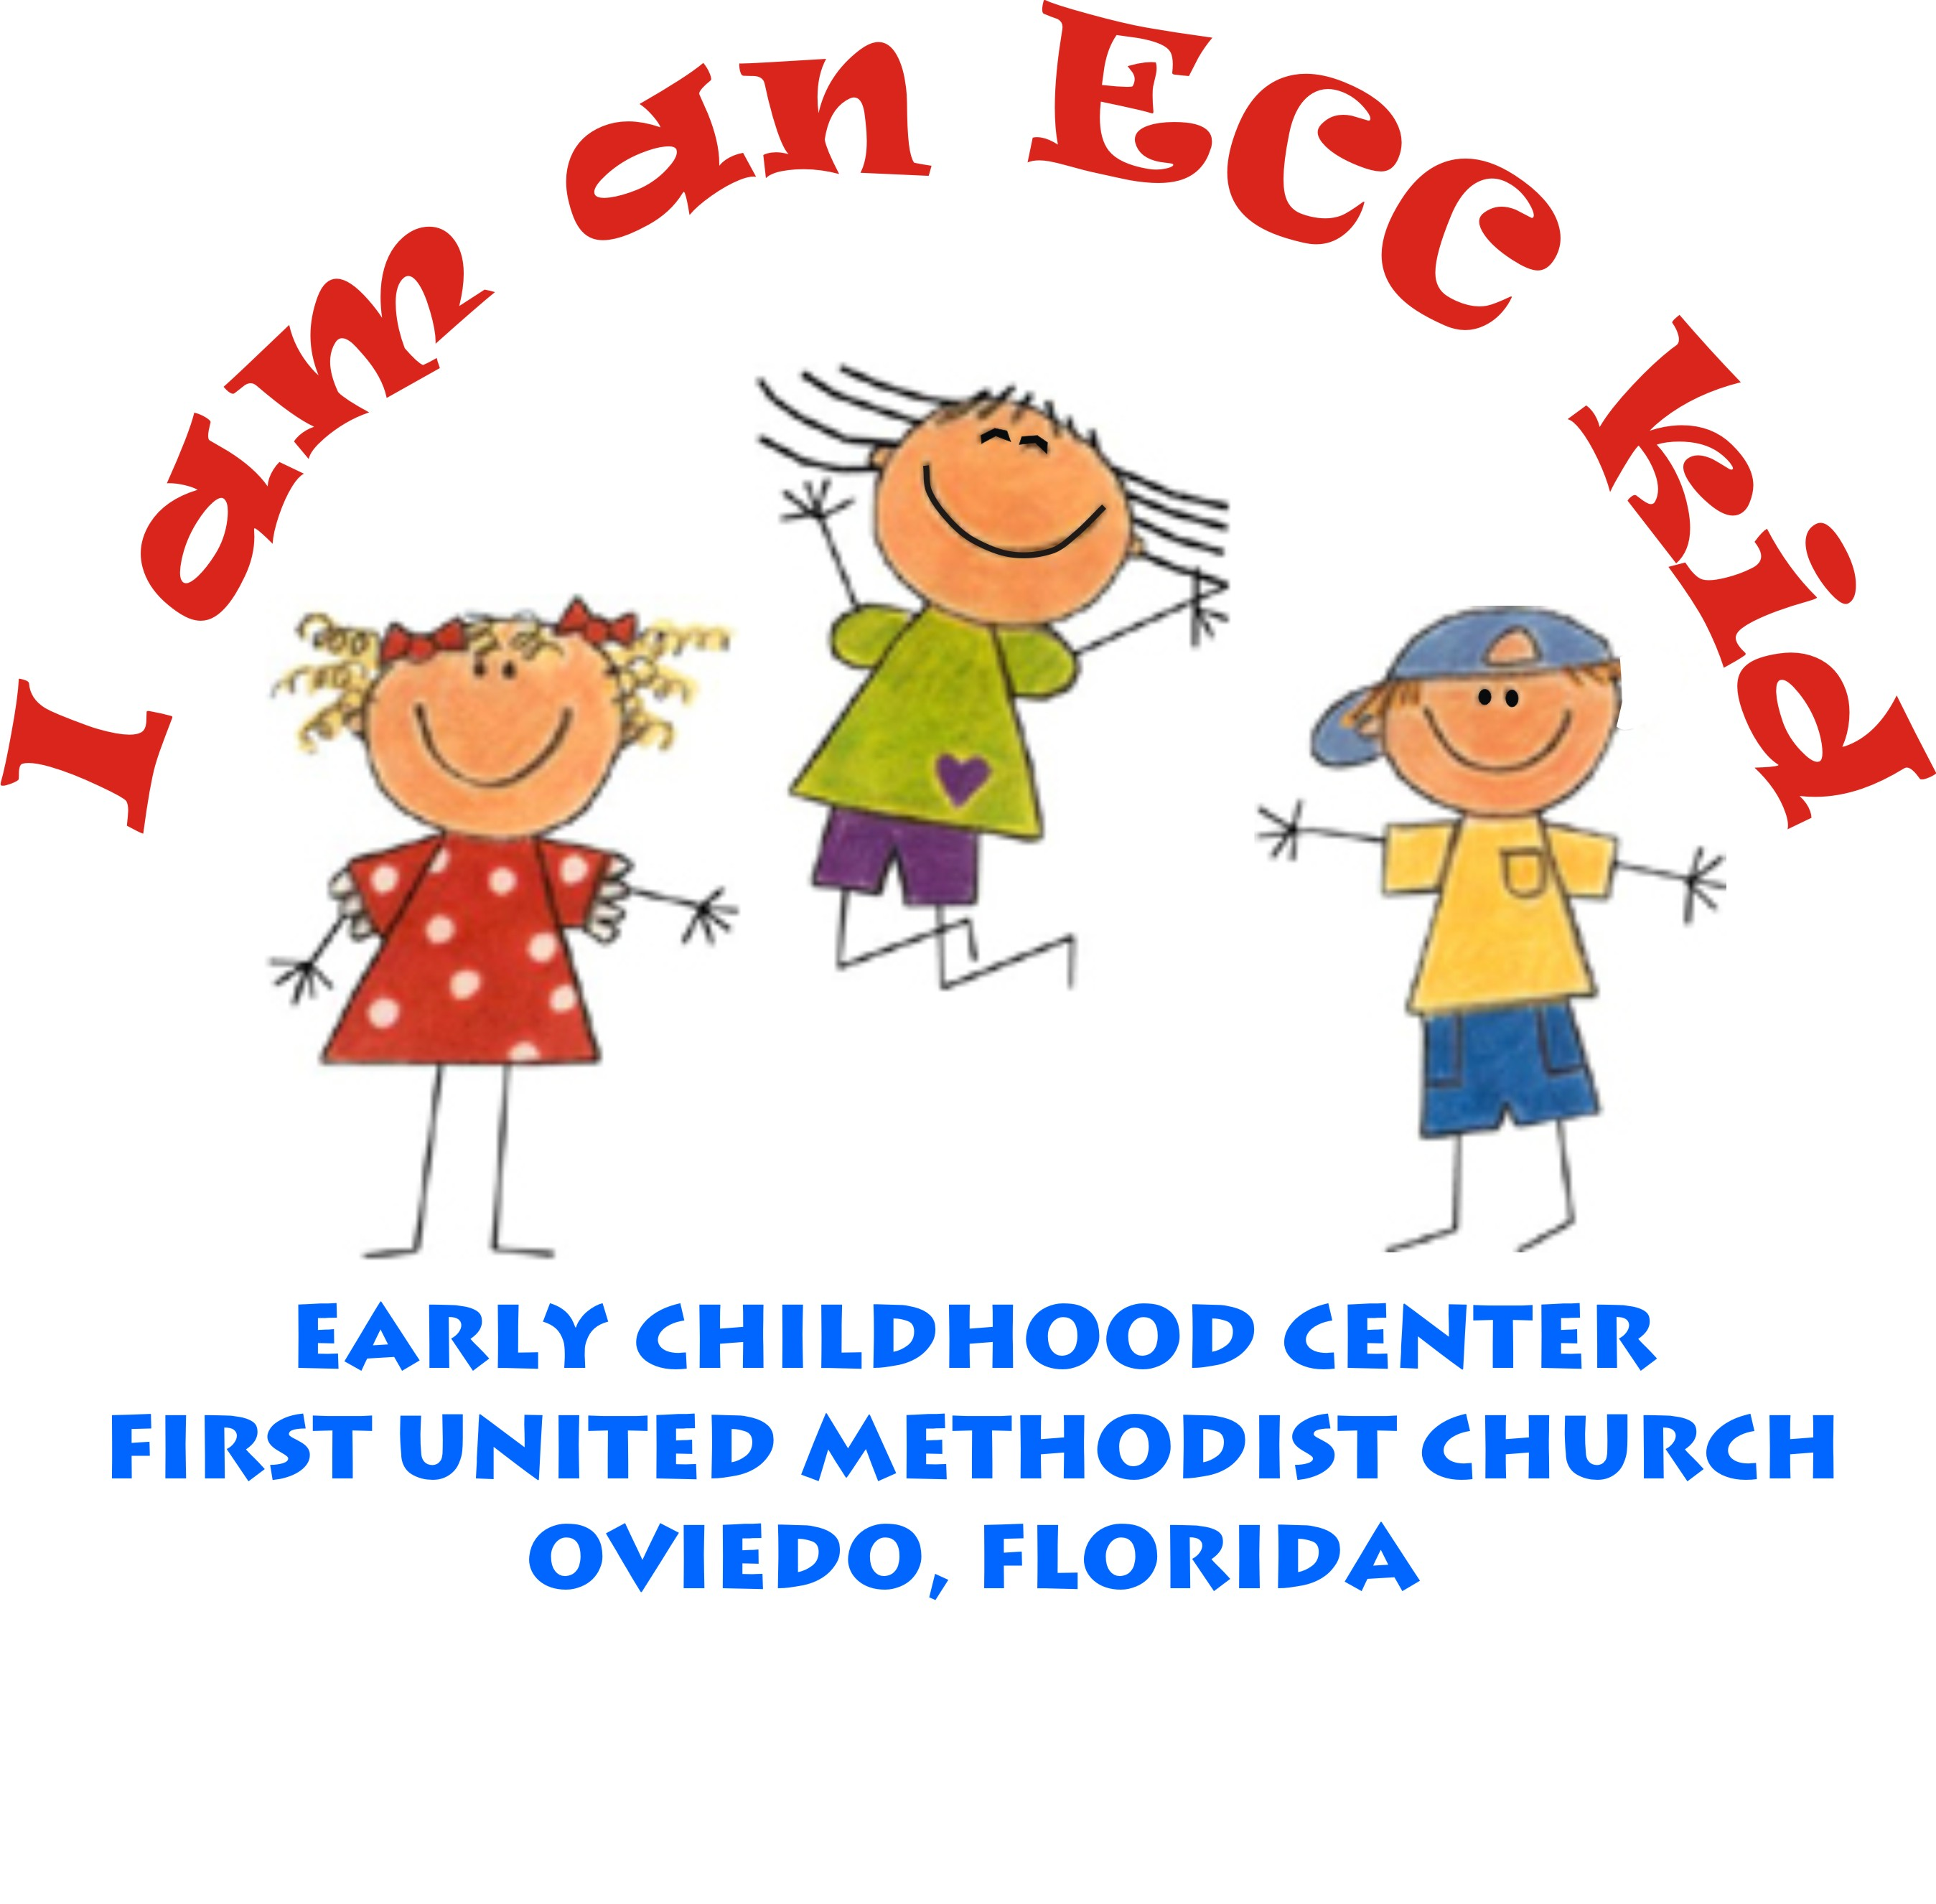 Early Childhood Center - First United Methodist Church